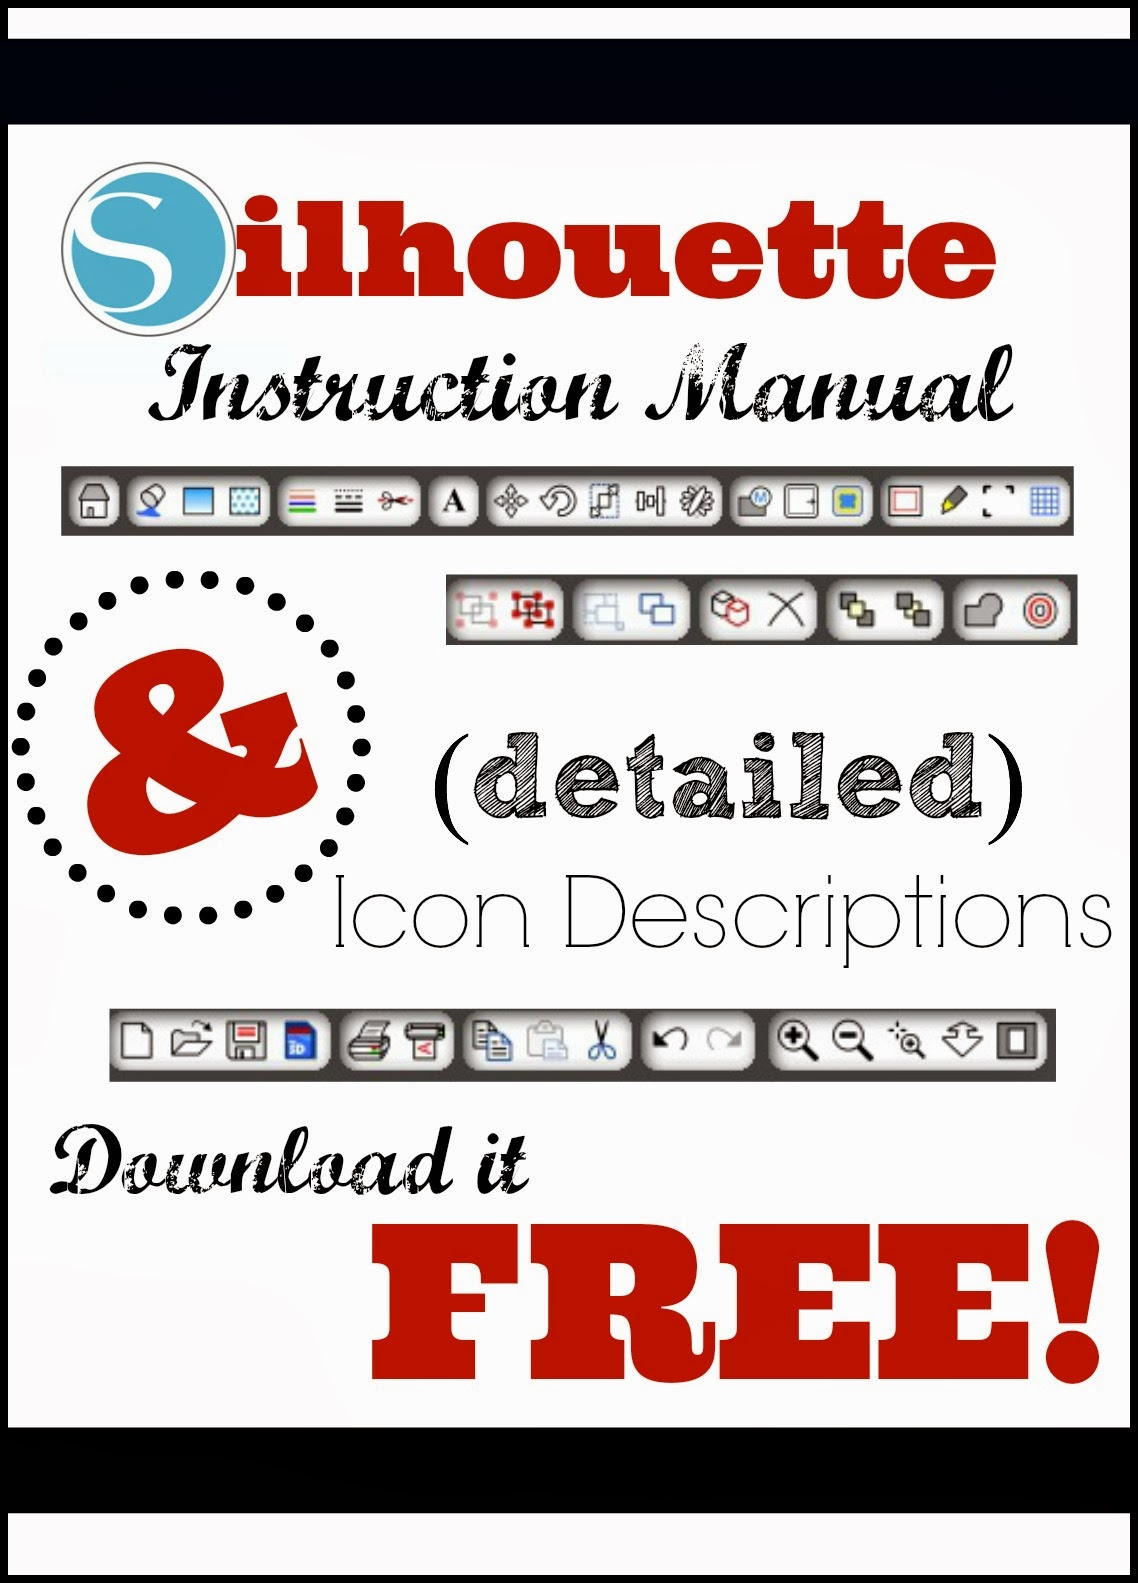 Silhouette, instruction manual, Silhouette Studio, tool descriptions